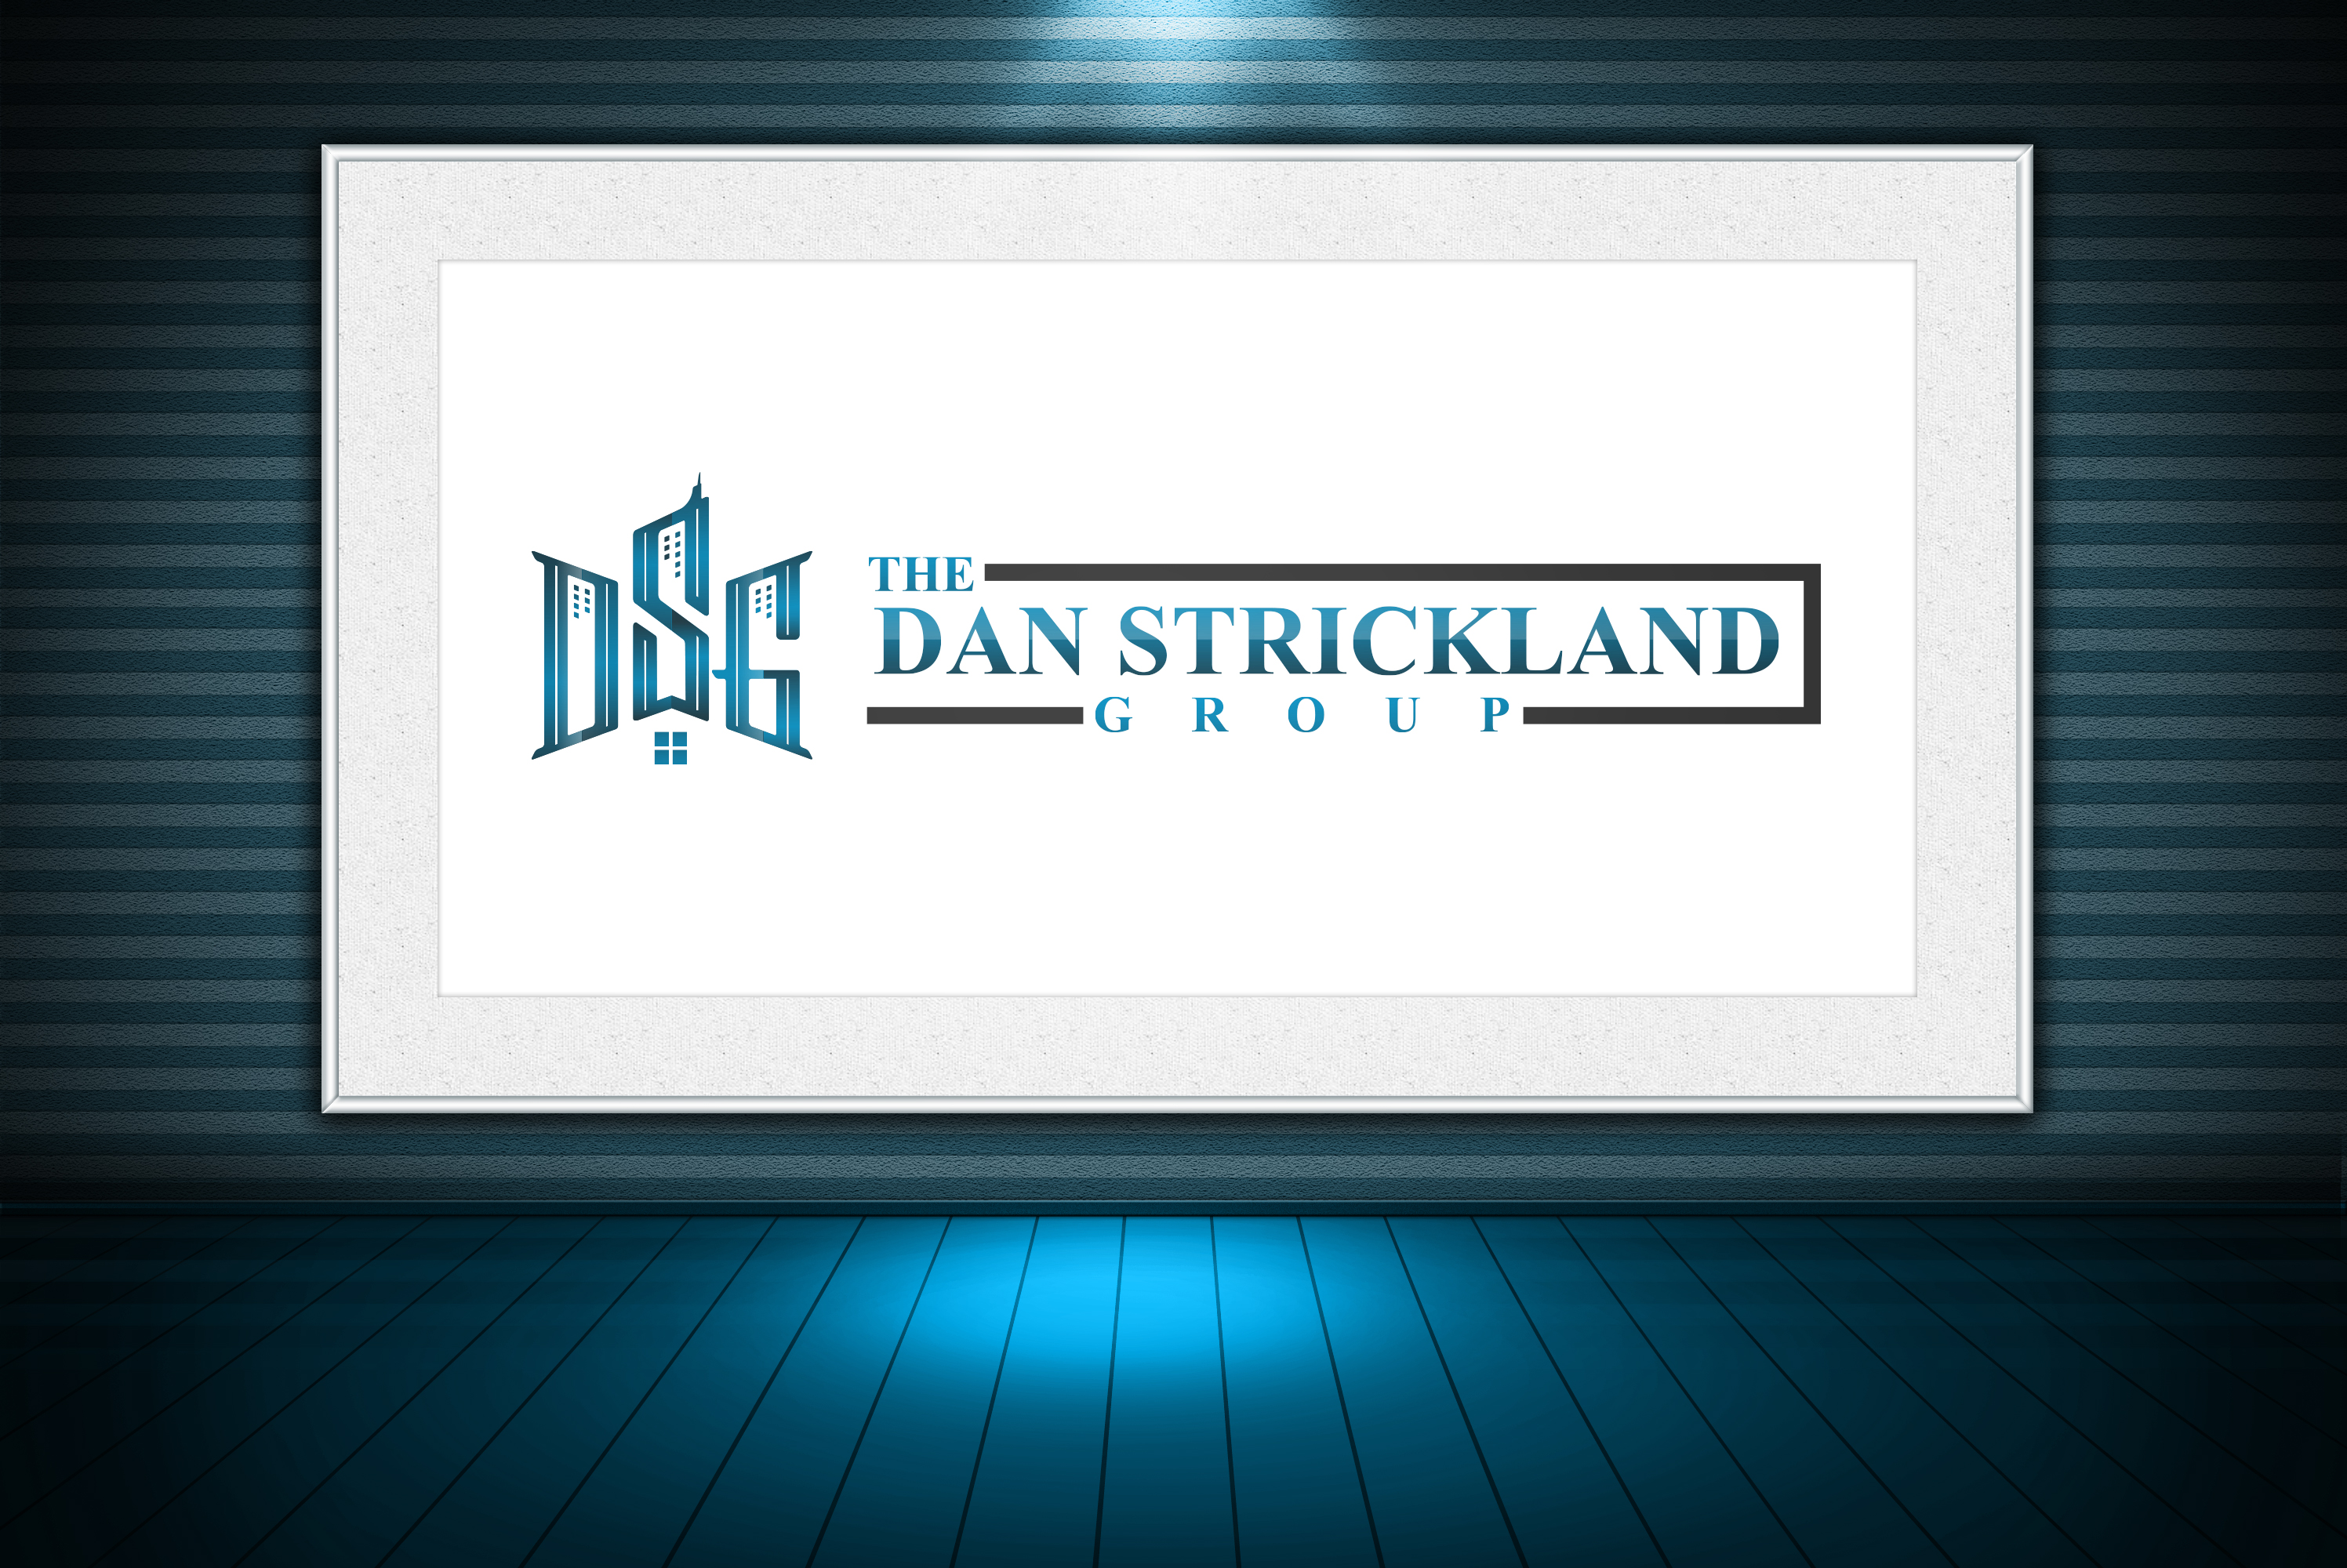 Logo Design by olii - Entry No. 333 in the Logo Design Contest Creative Logo Design for The Dan Strickland Group.